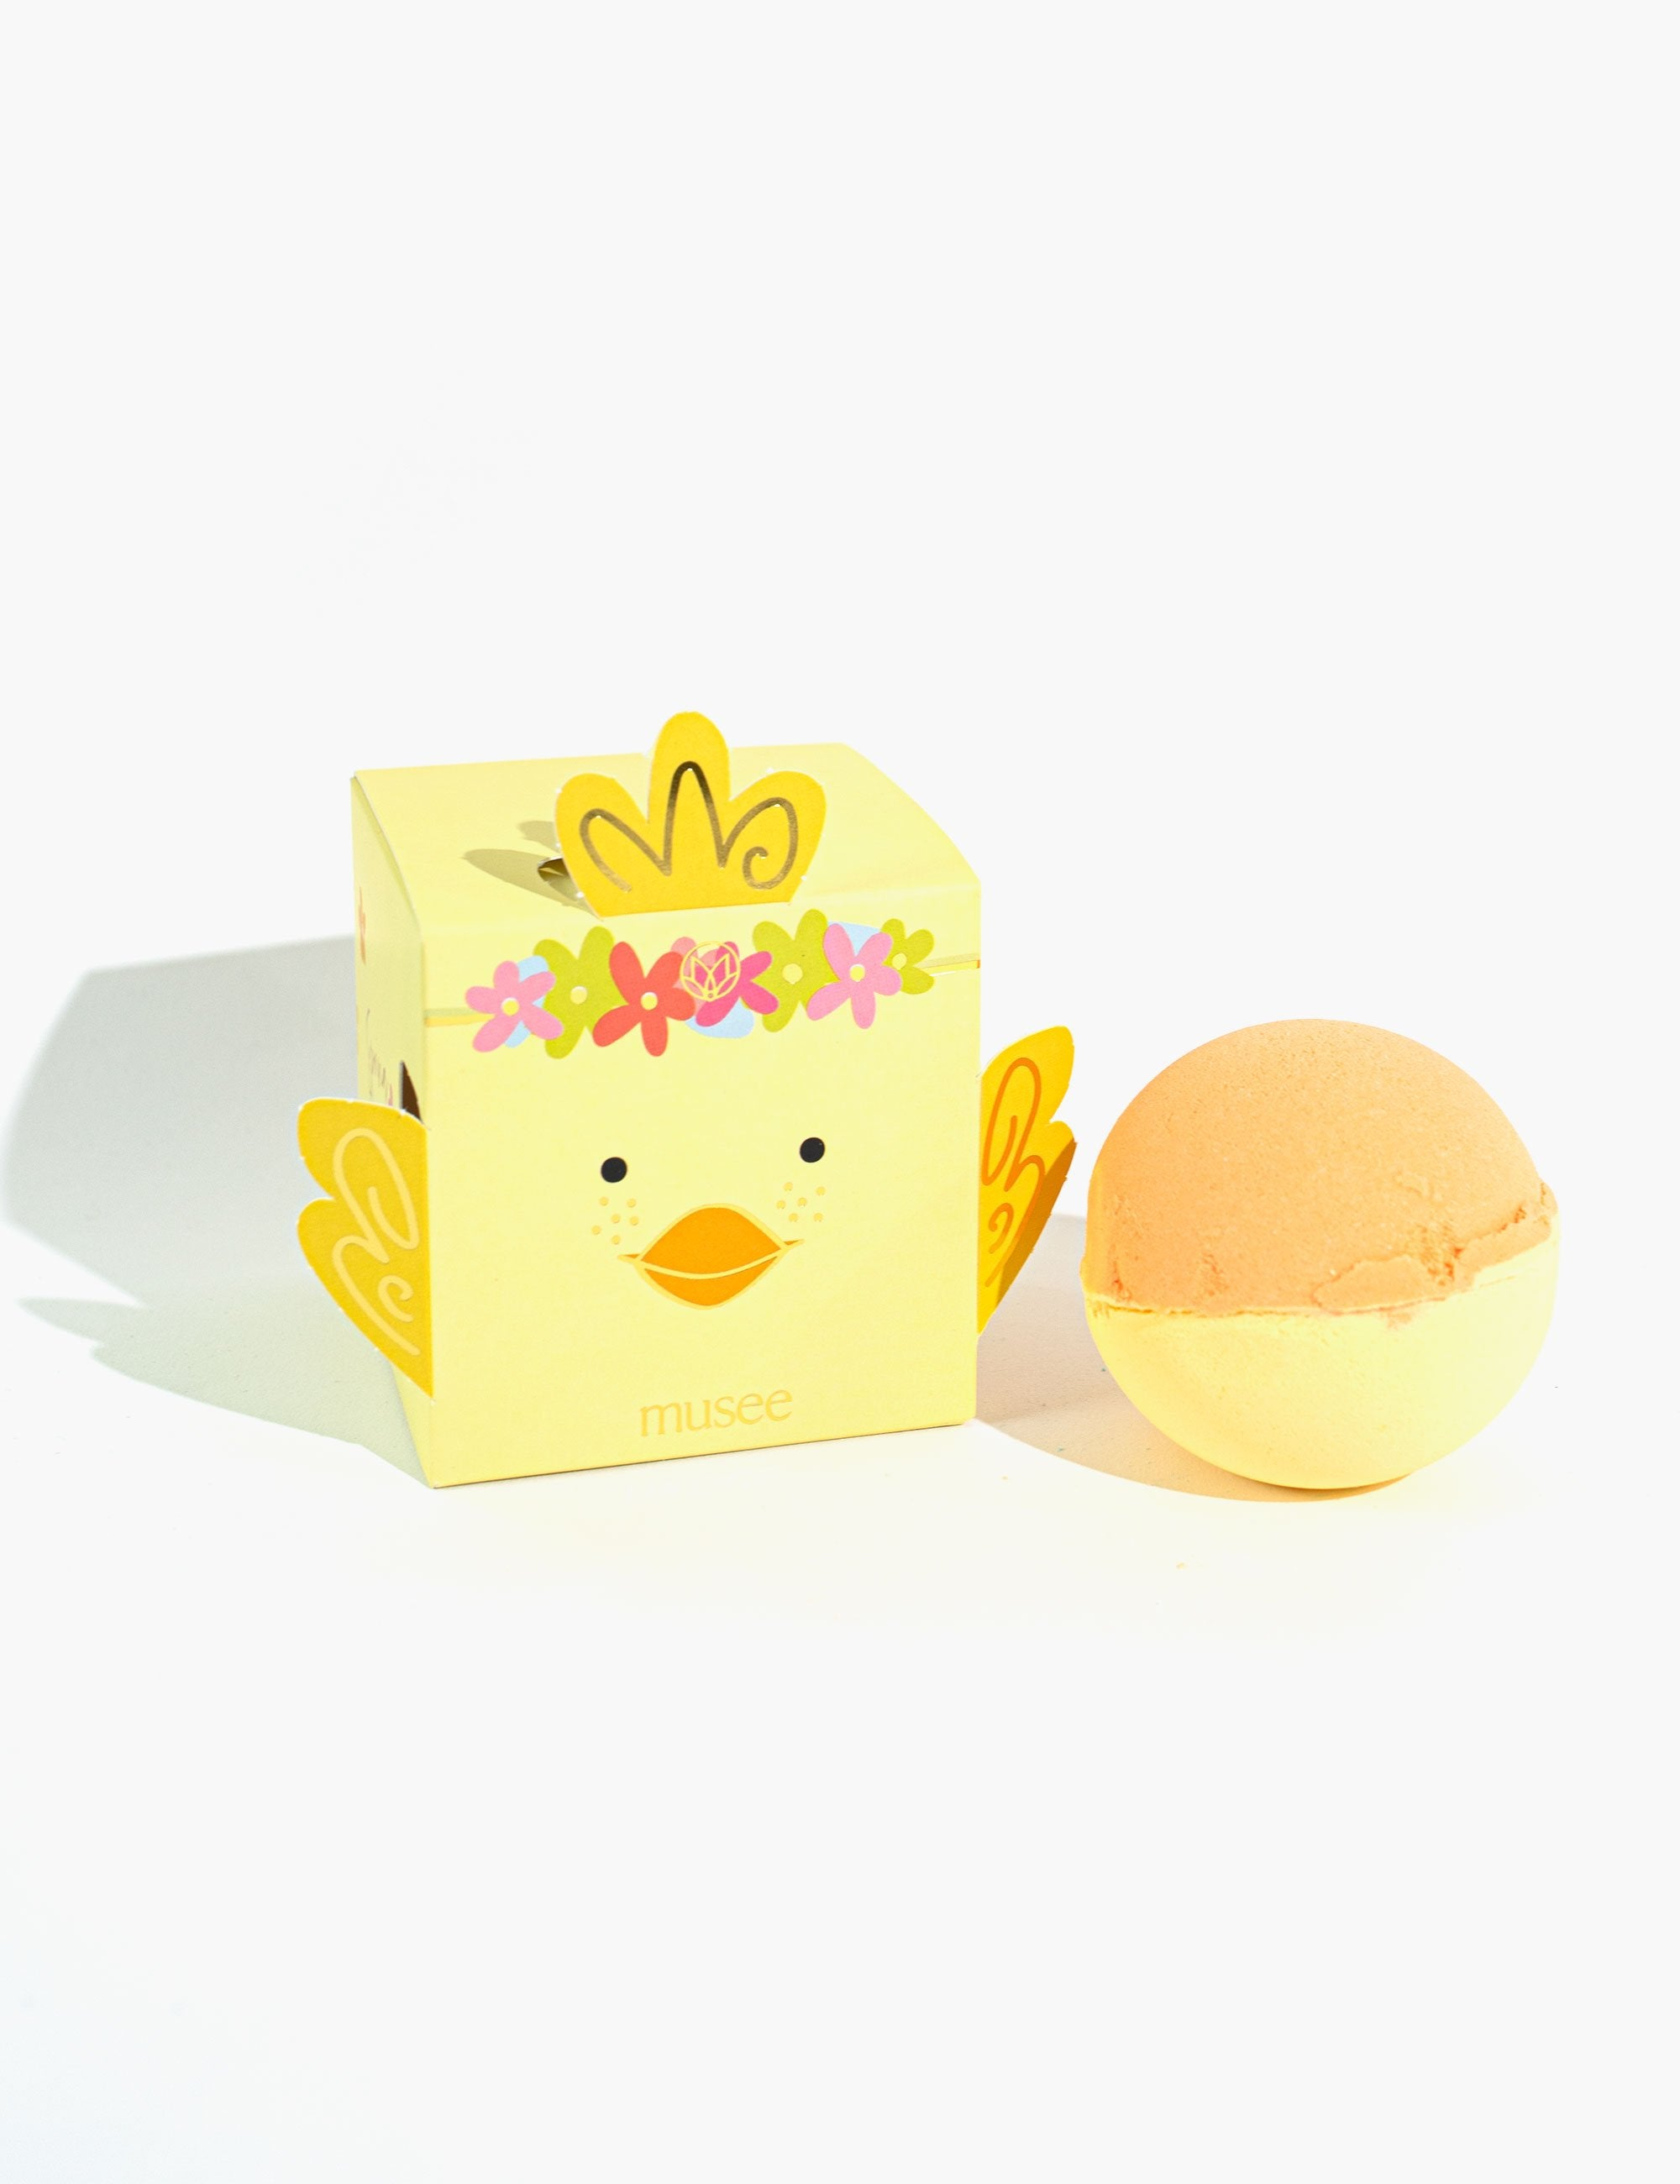 Yellow cube box with a baby chick face and wings sits over solid white surface next to a yellow and orange colored spherical bath bomb